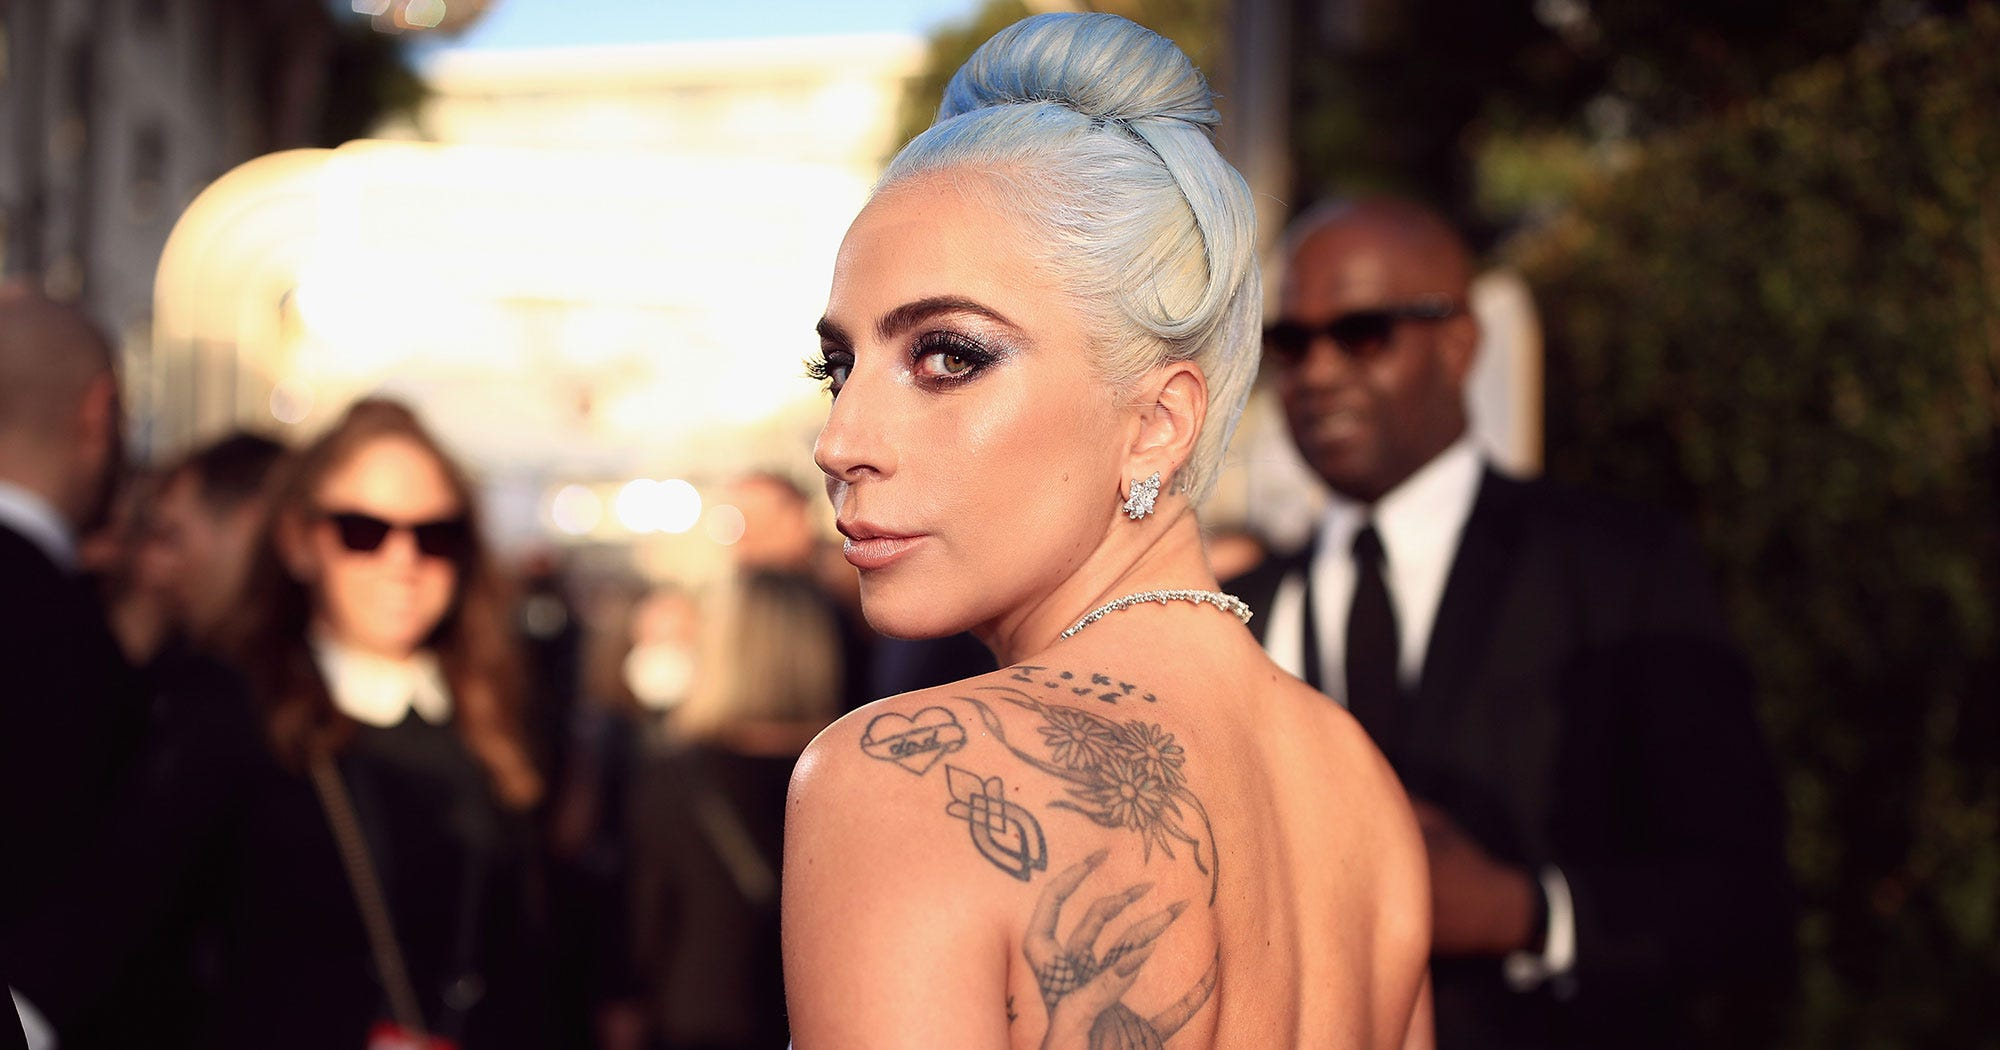 5b64979cd A Comprehensive Guide To Lady Gaga's Tattoos & Meanings